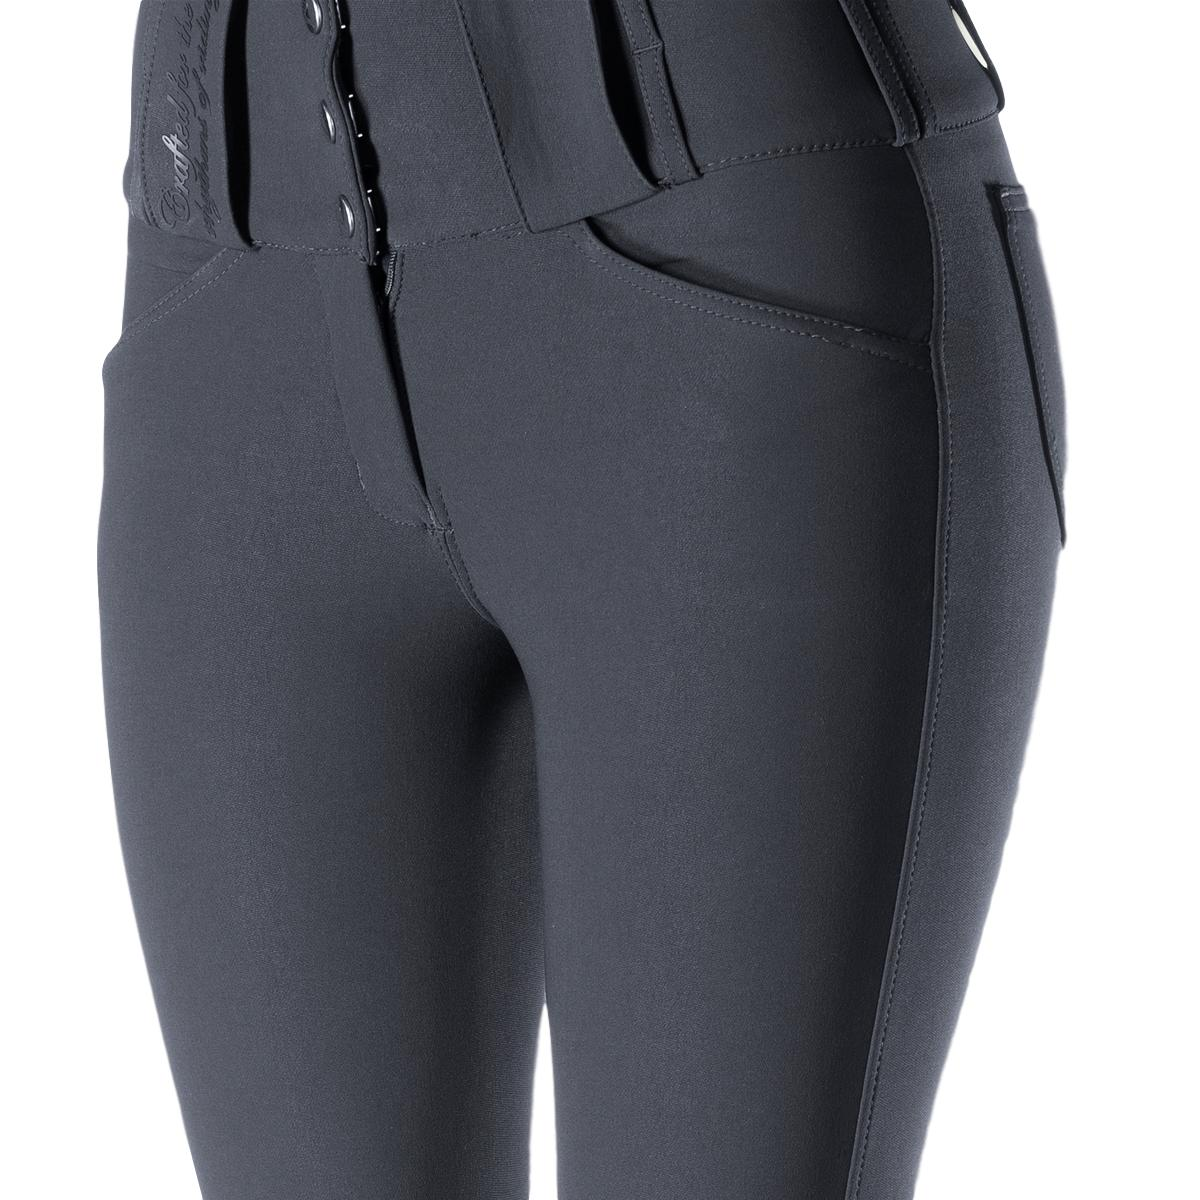 Horze-Desiree-Women-039-s-Knee-Patch-Riding-Breeches-with-High-Waist-and-Bi-Stretch thumbnail 17